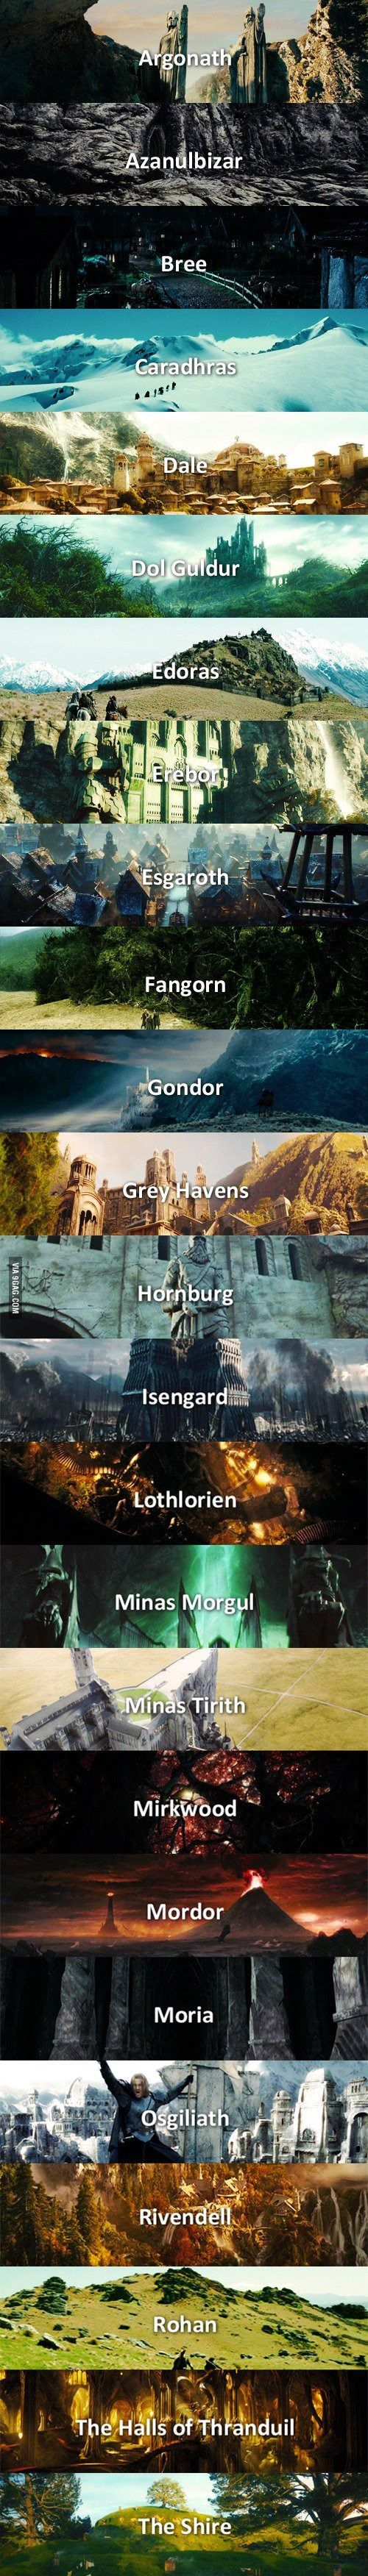 The Middle Earth. Even though I know every single one of them...